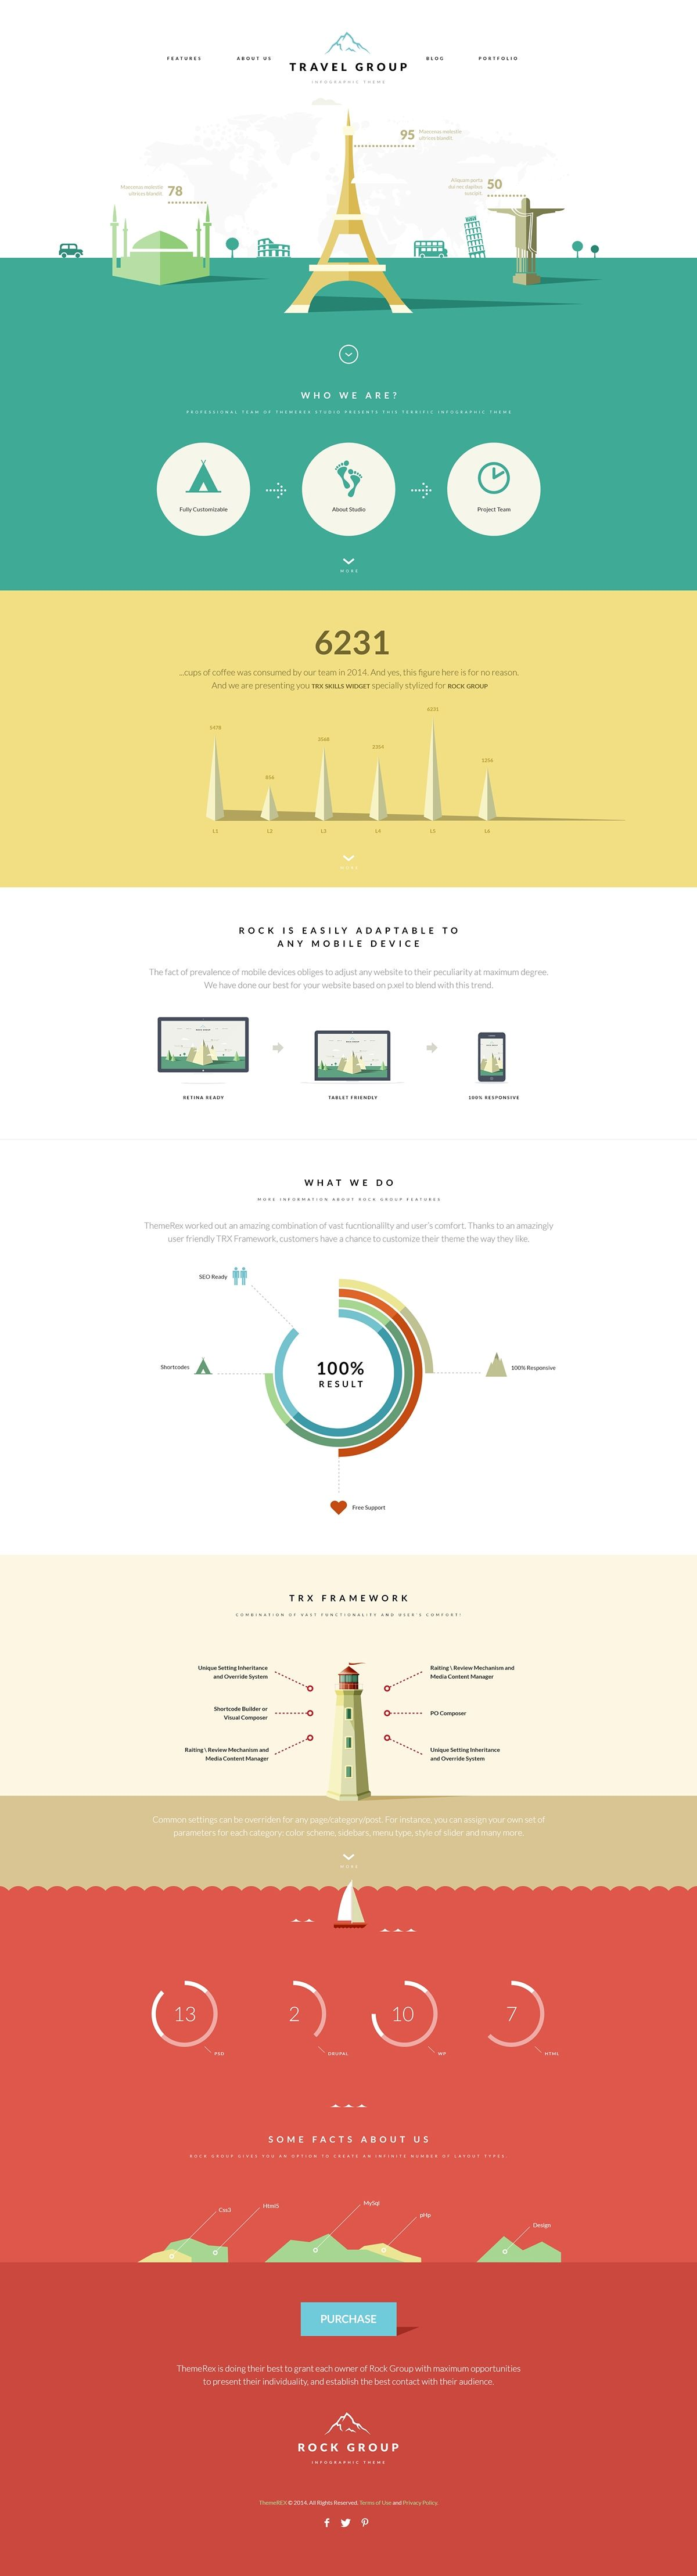 Rock Group | Multipurpose Infographic Theme on Behance